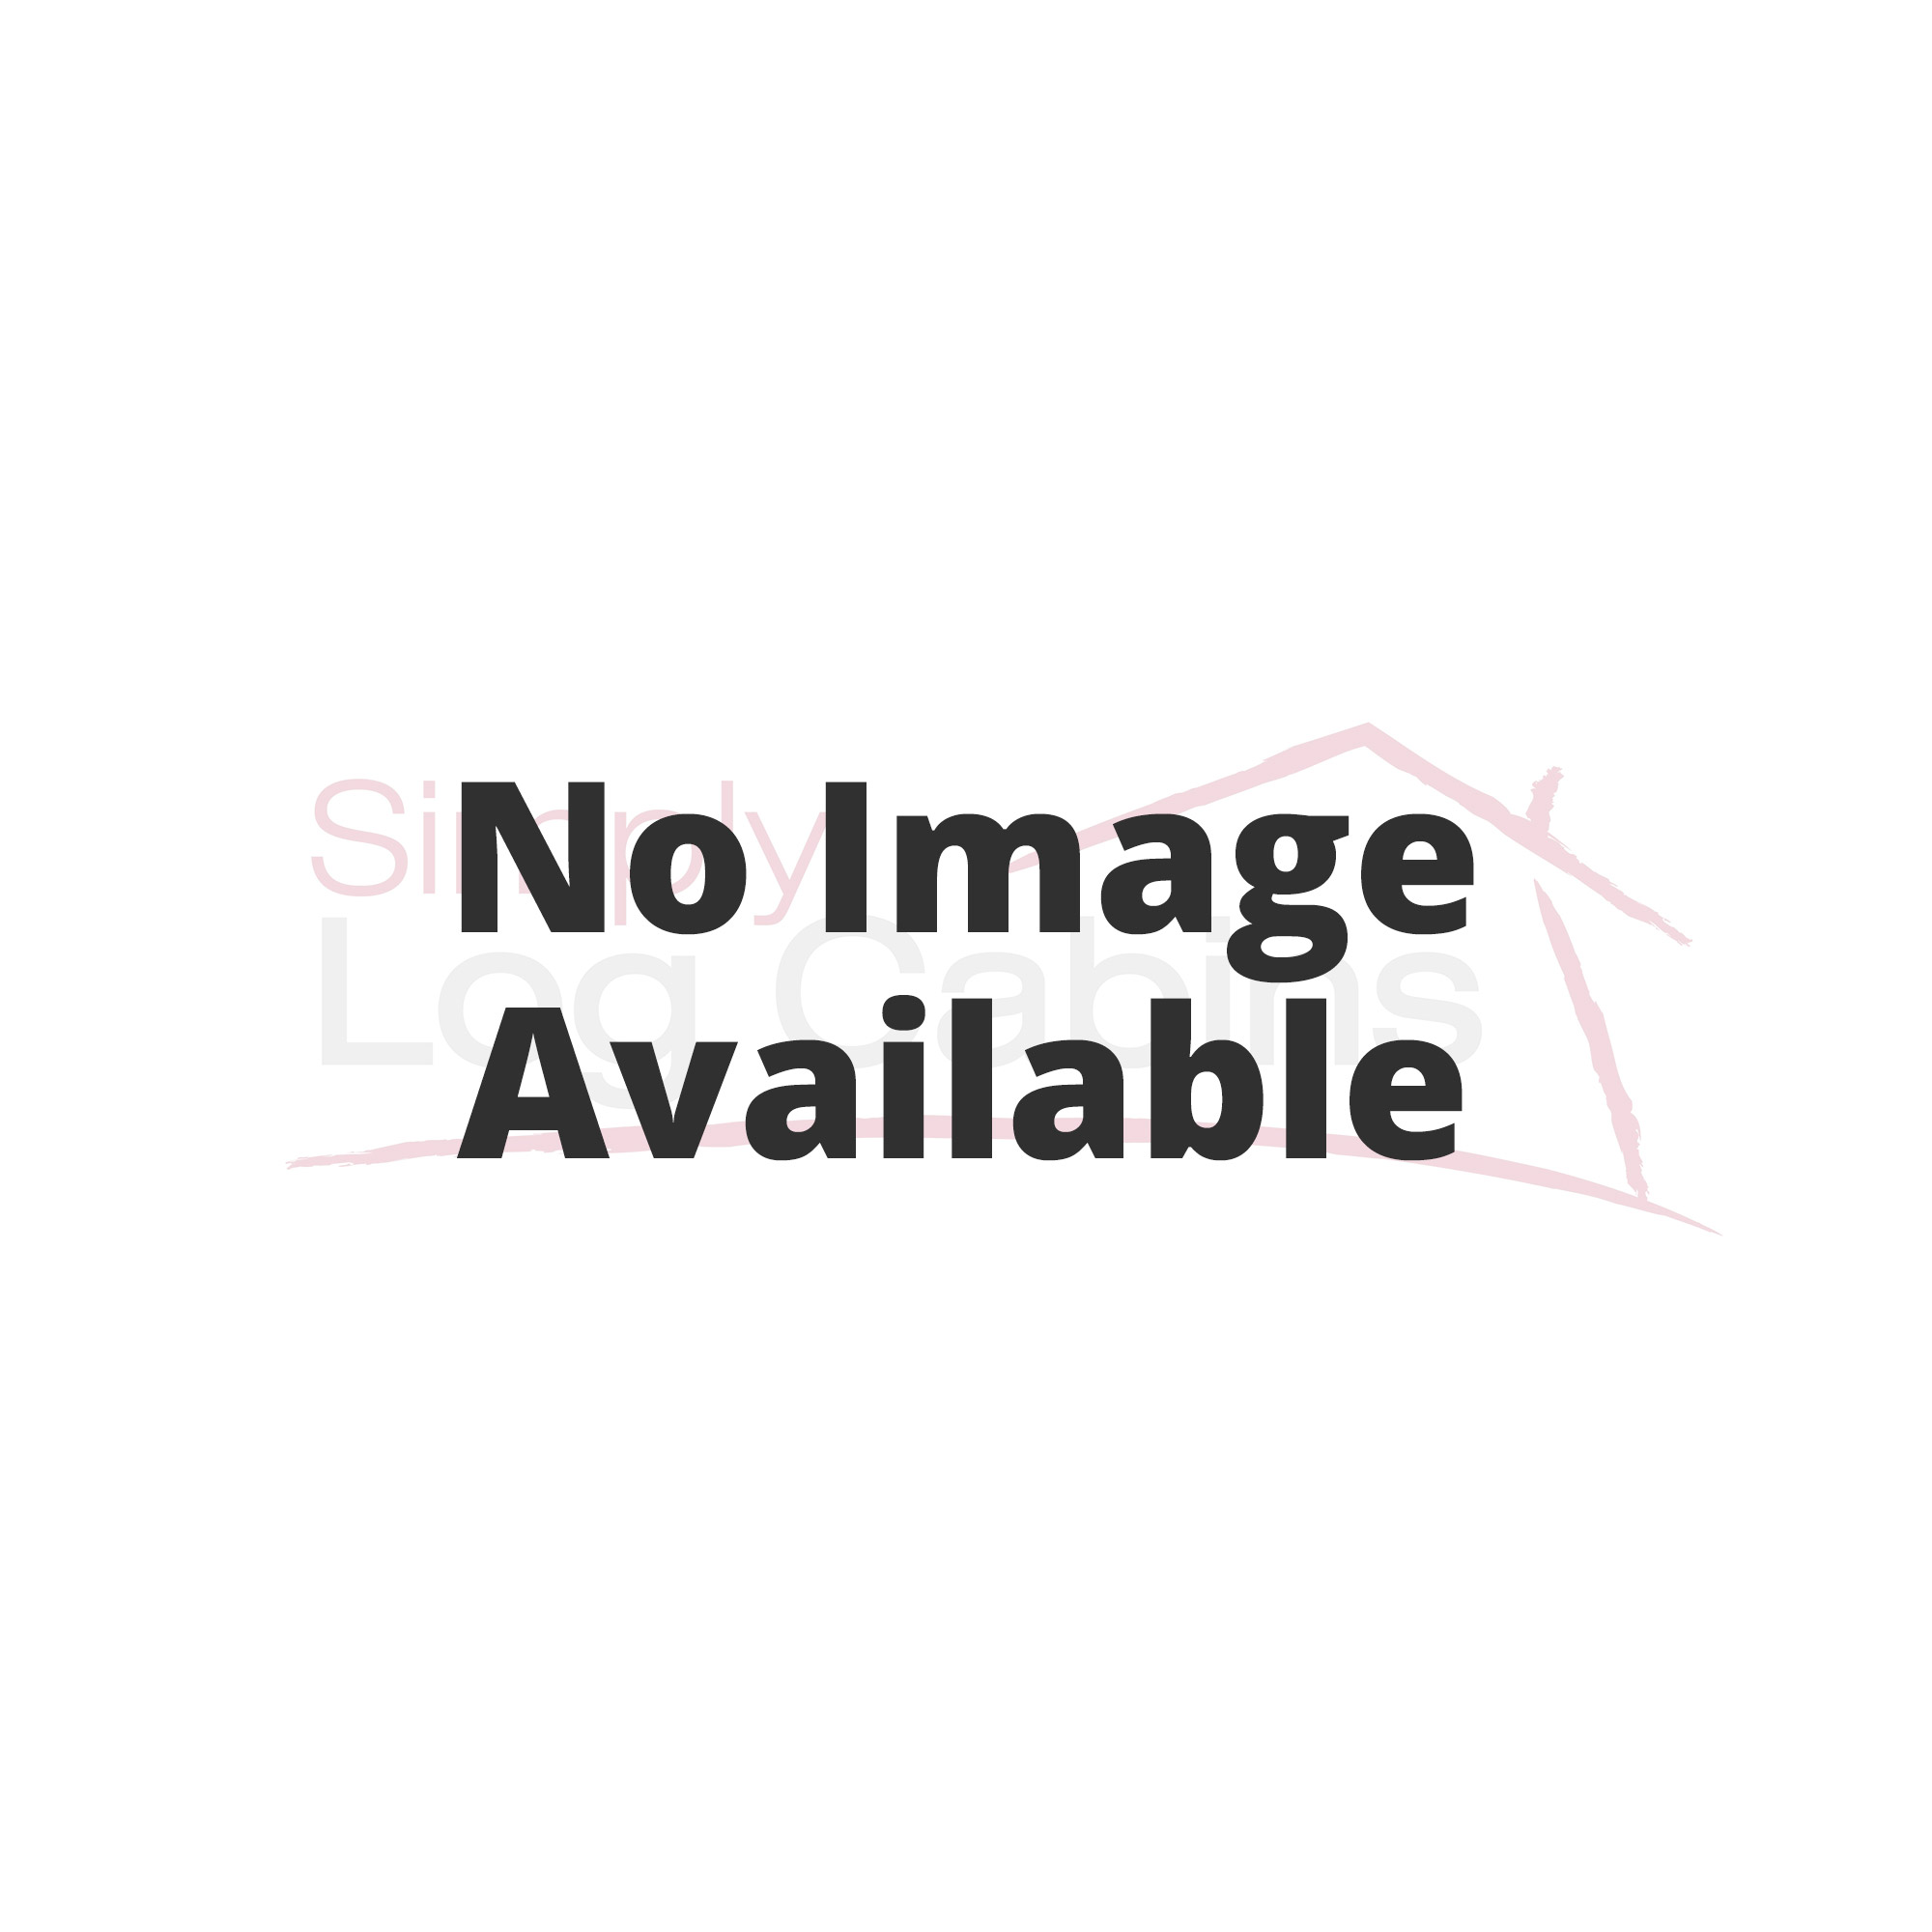 Car Ports For Sale: Eurovudas Garage And Carport 6x6